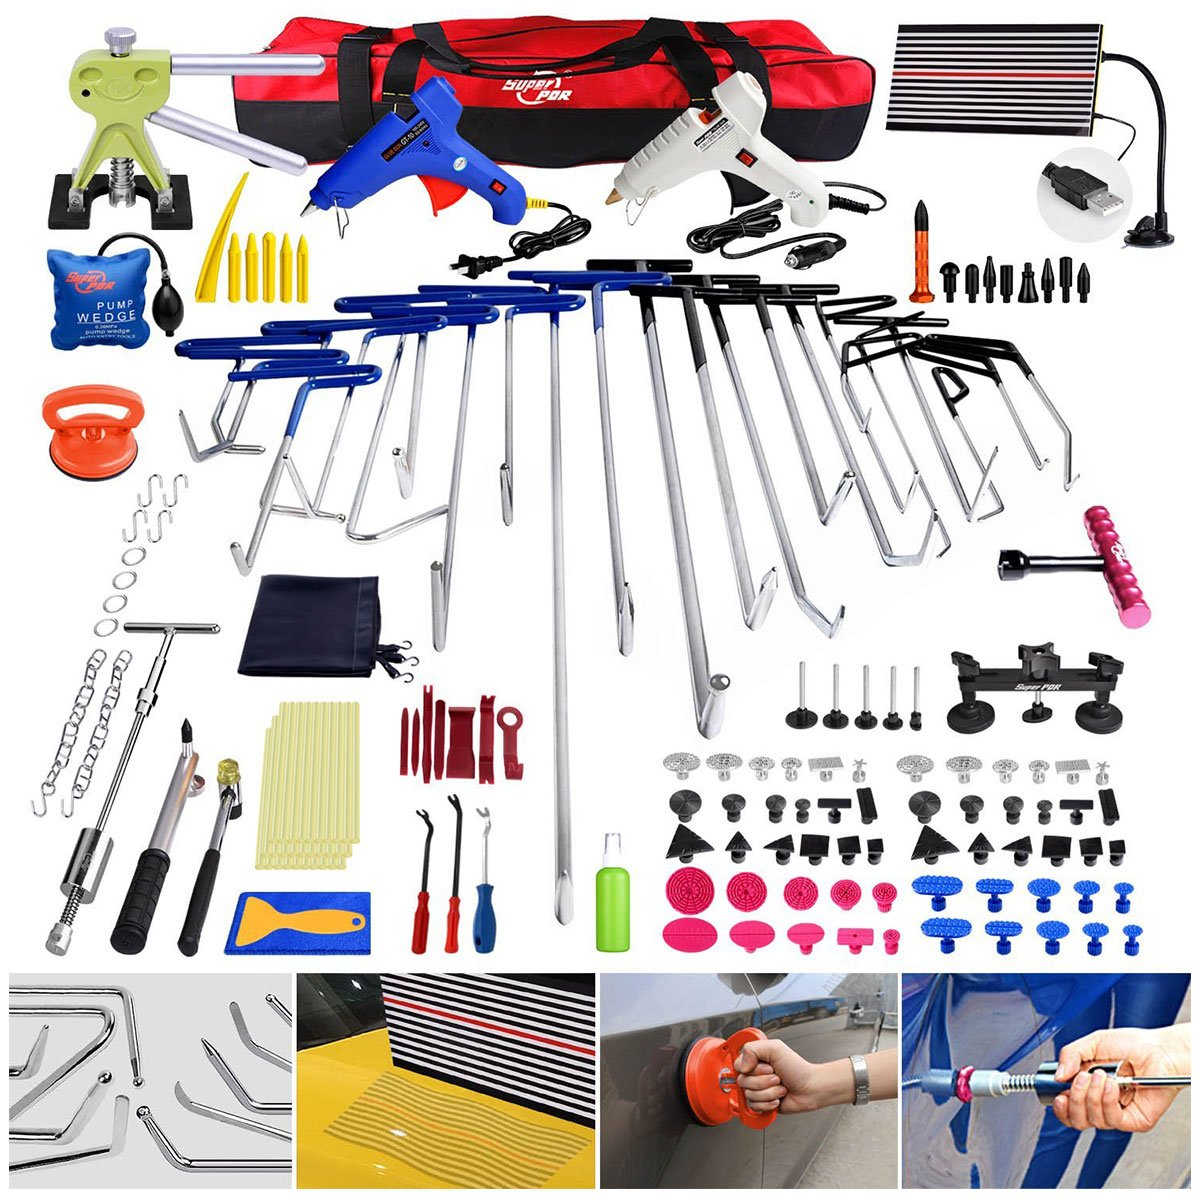 Super PDR 152pcs Professional PDR Rods Tool Set Stainless Steel Auto Body Paintless Dent Removal Hail Damage Door Ding Repair Kit With LED Line Board Bridge Dent Puller